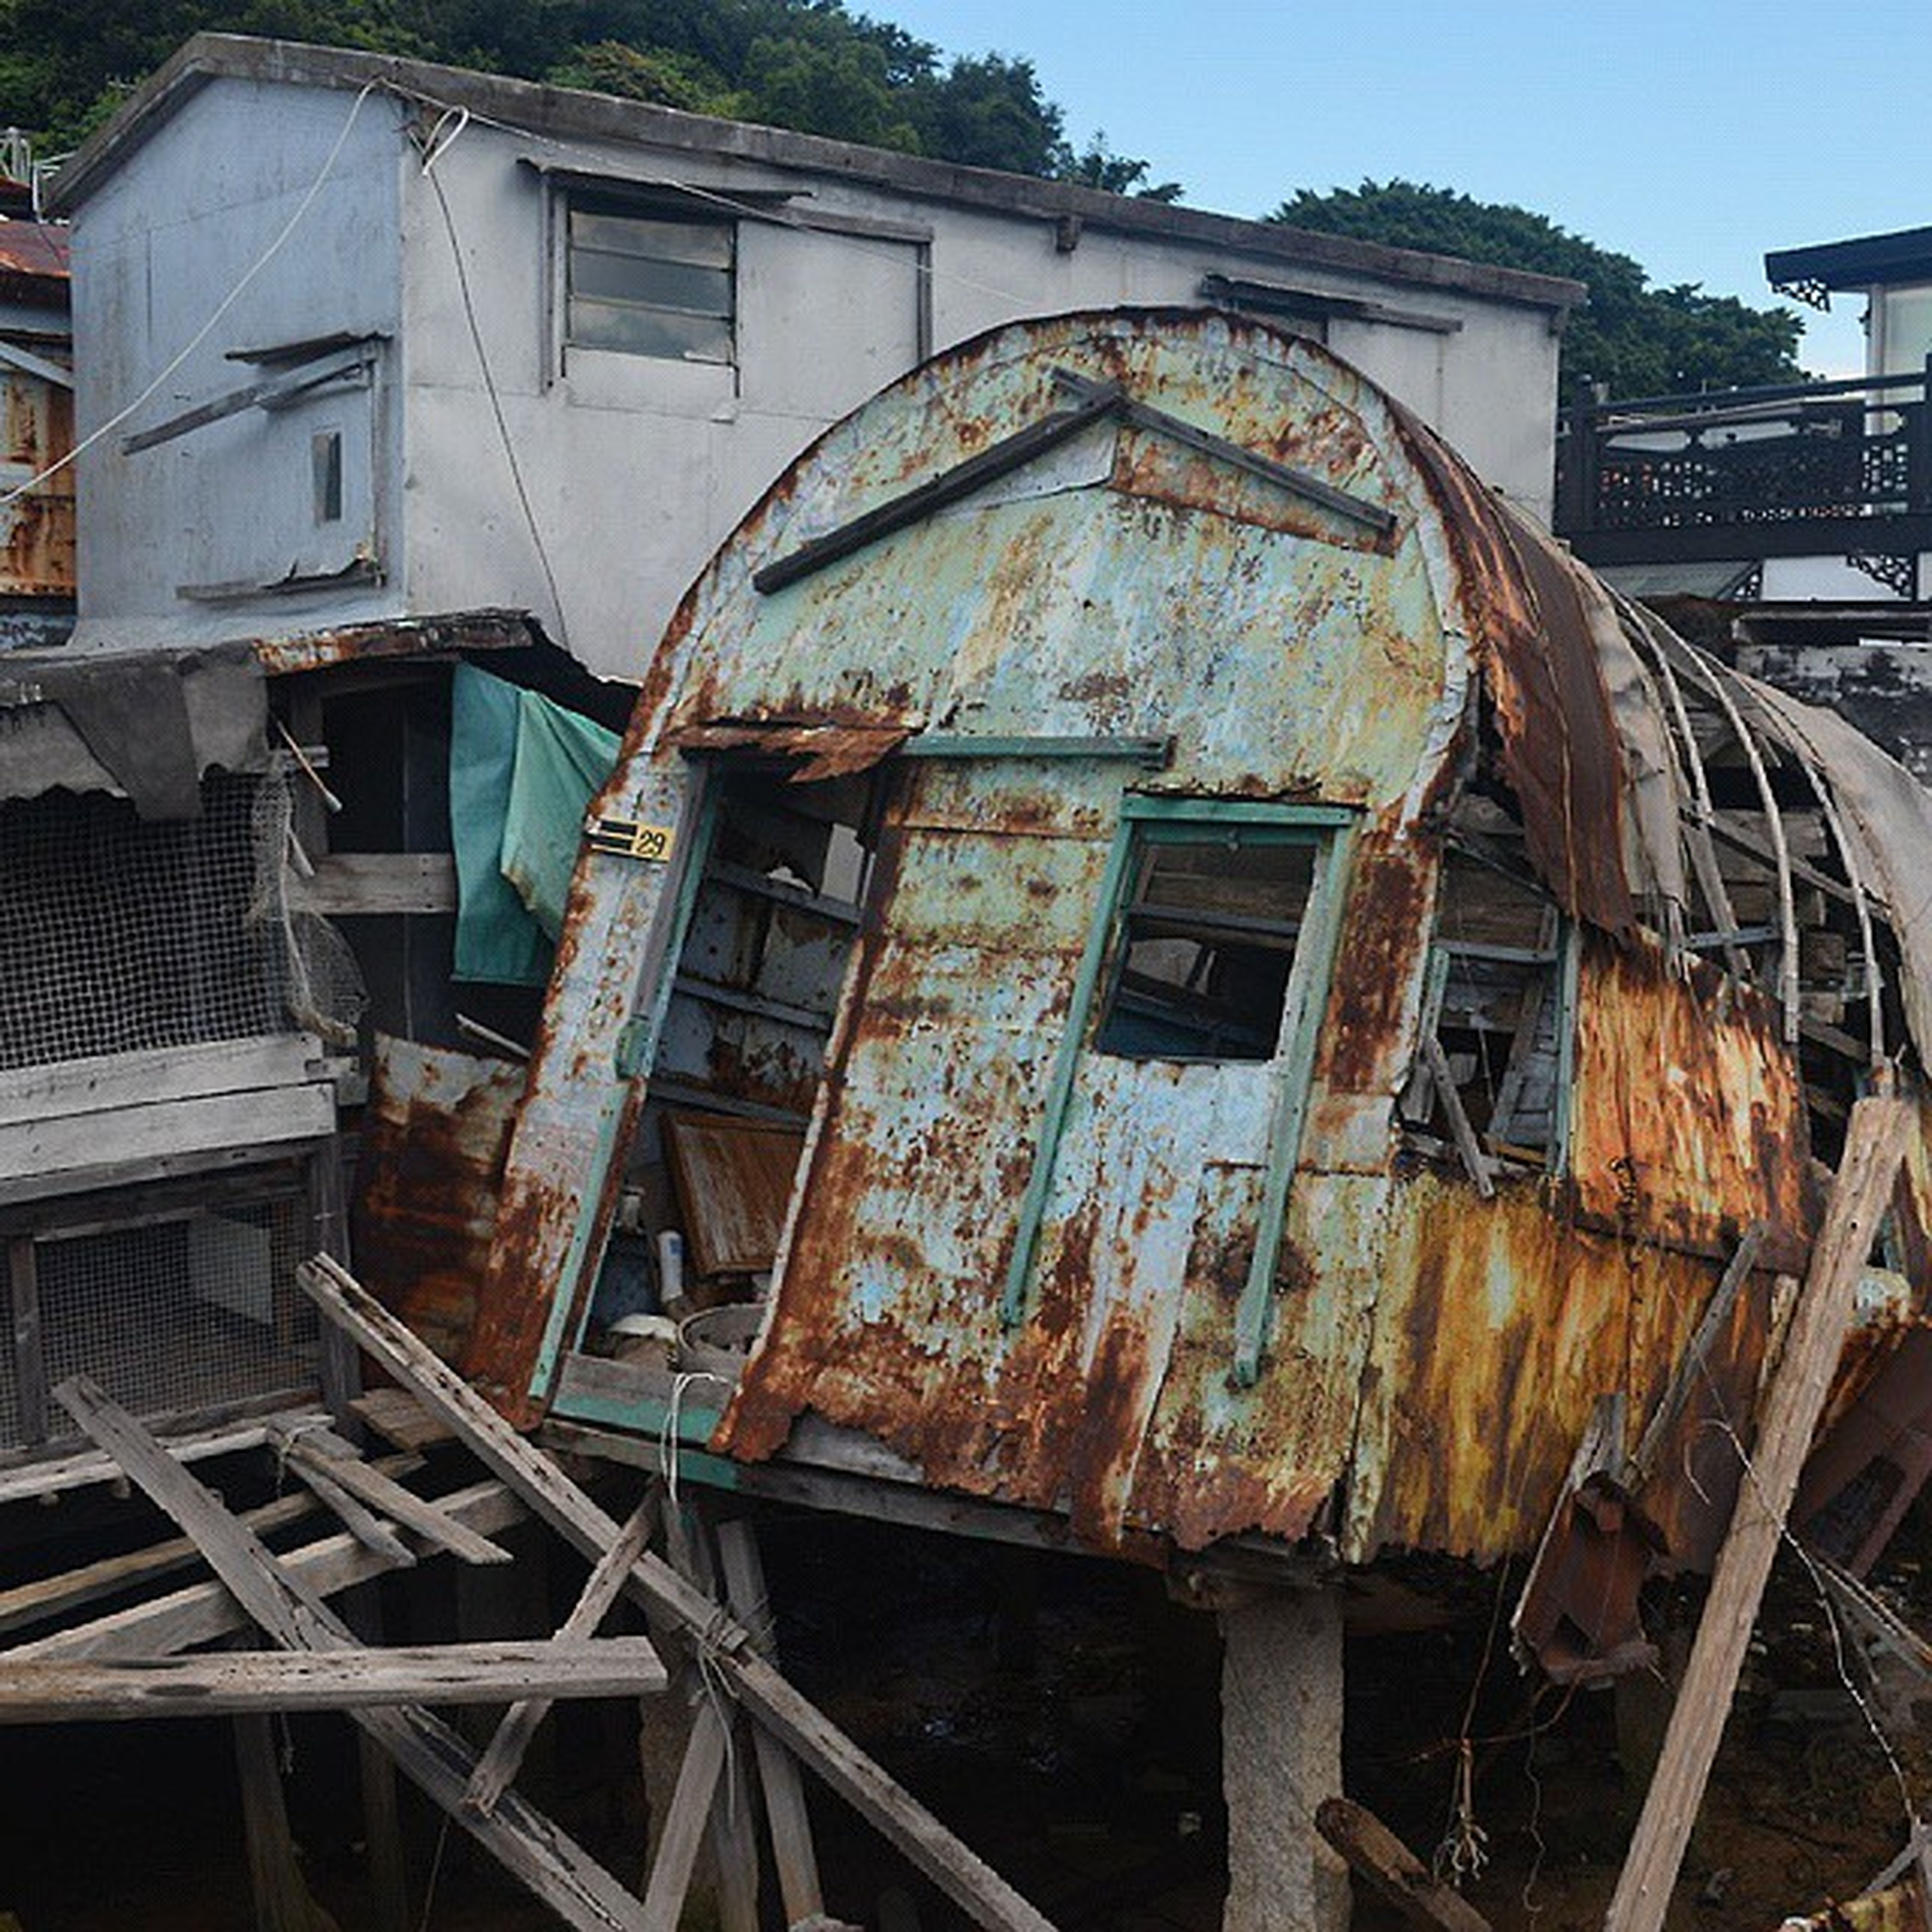 abandoned, obsolete, damaged, deterioration, run-down, old, built structure, architecture, bad condition, building exterior, weathered, rusty, ruined, destruction, factory, broken, industry, construction site, house, metal